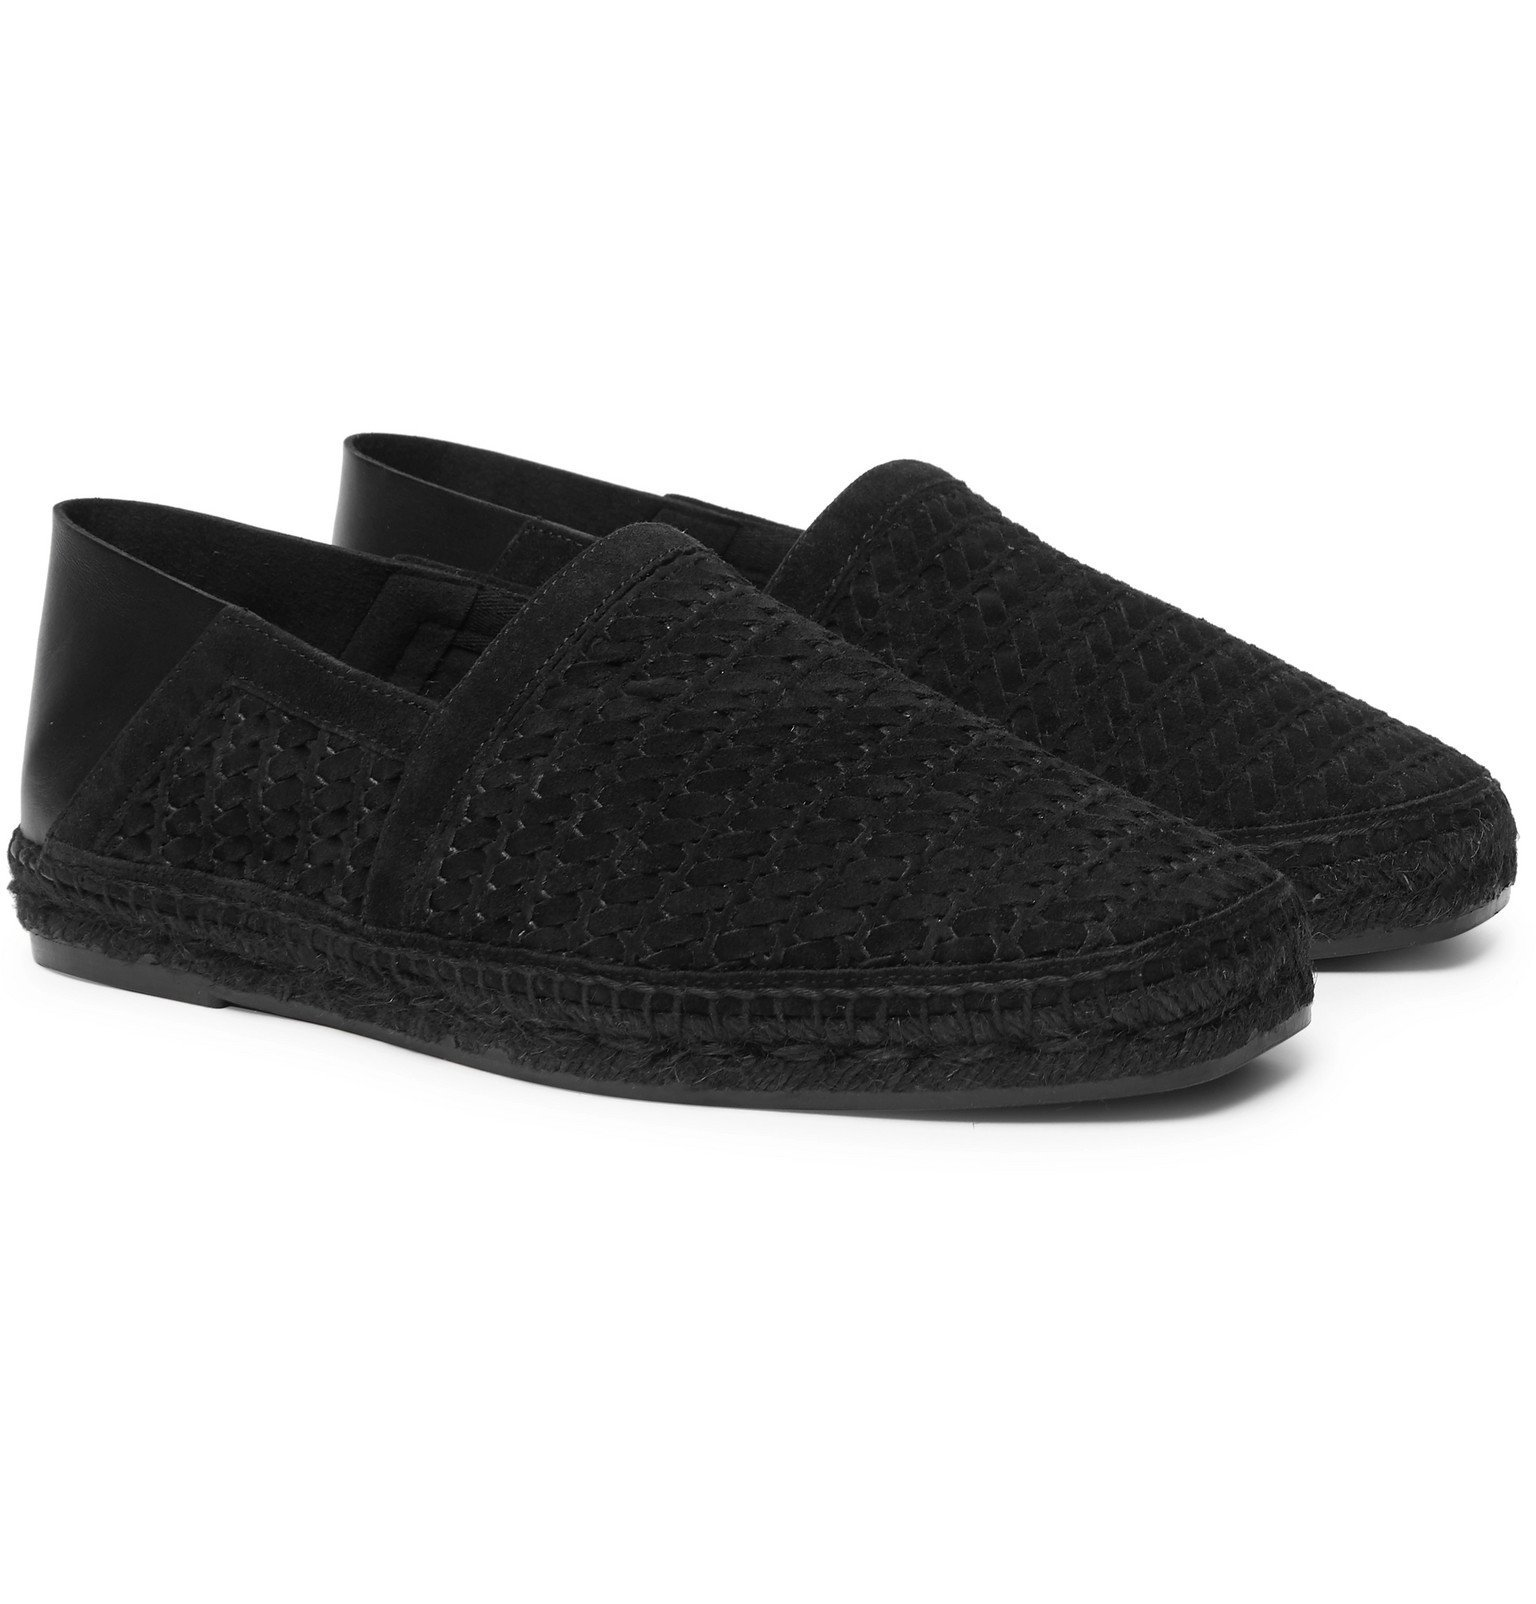 Photo: TOM FORD - Barnes Leather-Trimmed Woven Suede Espadrilles - Black